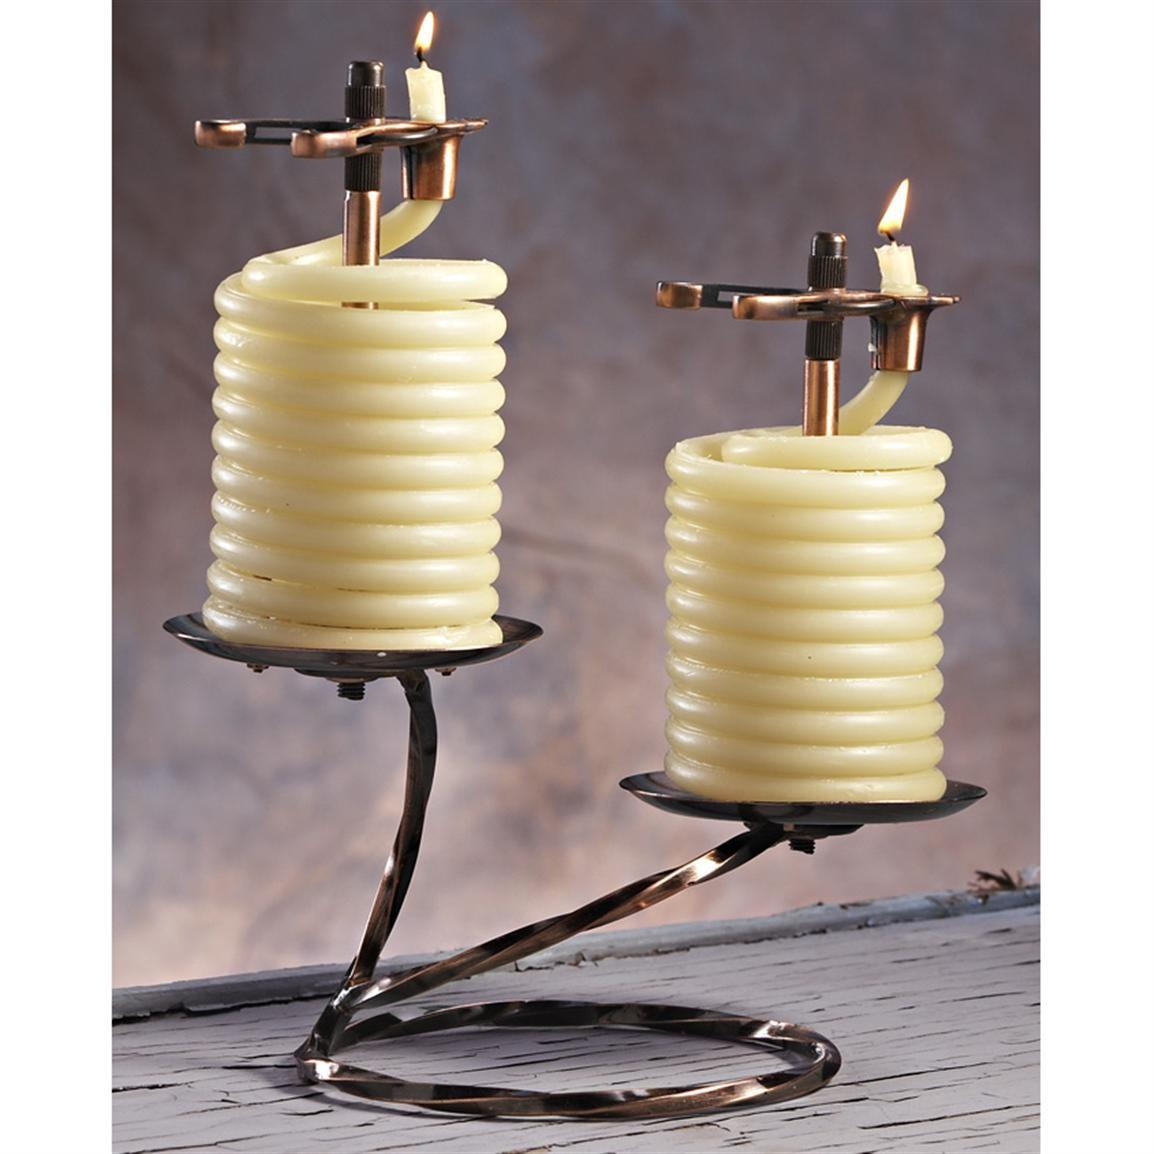 Spend Romantic Time Beeswax Coil Candle